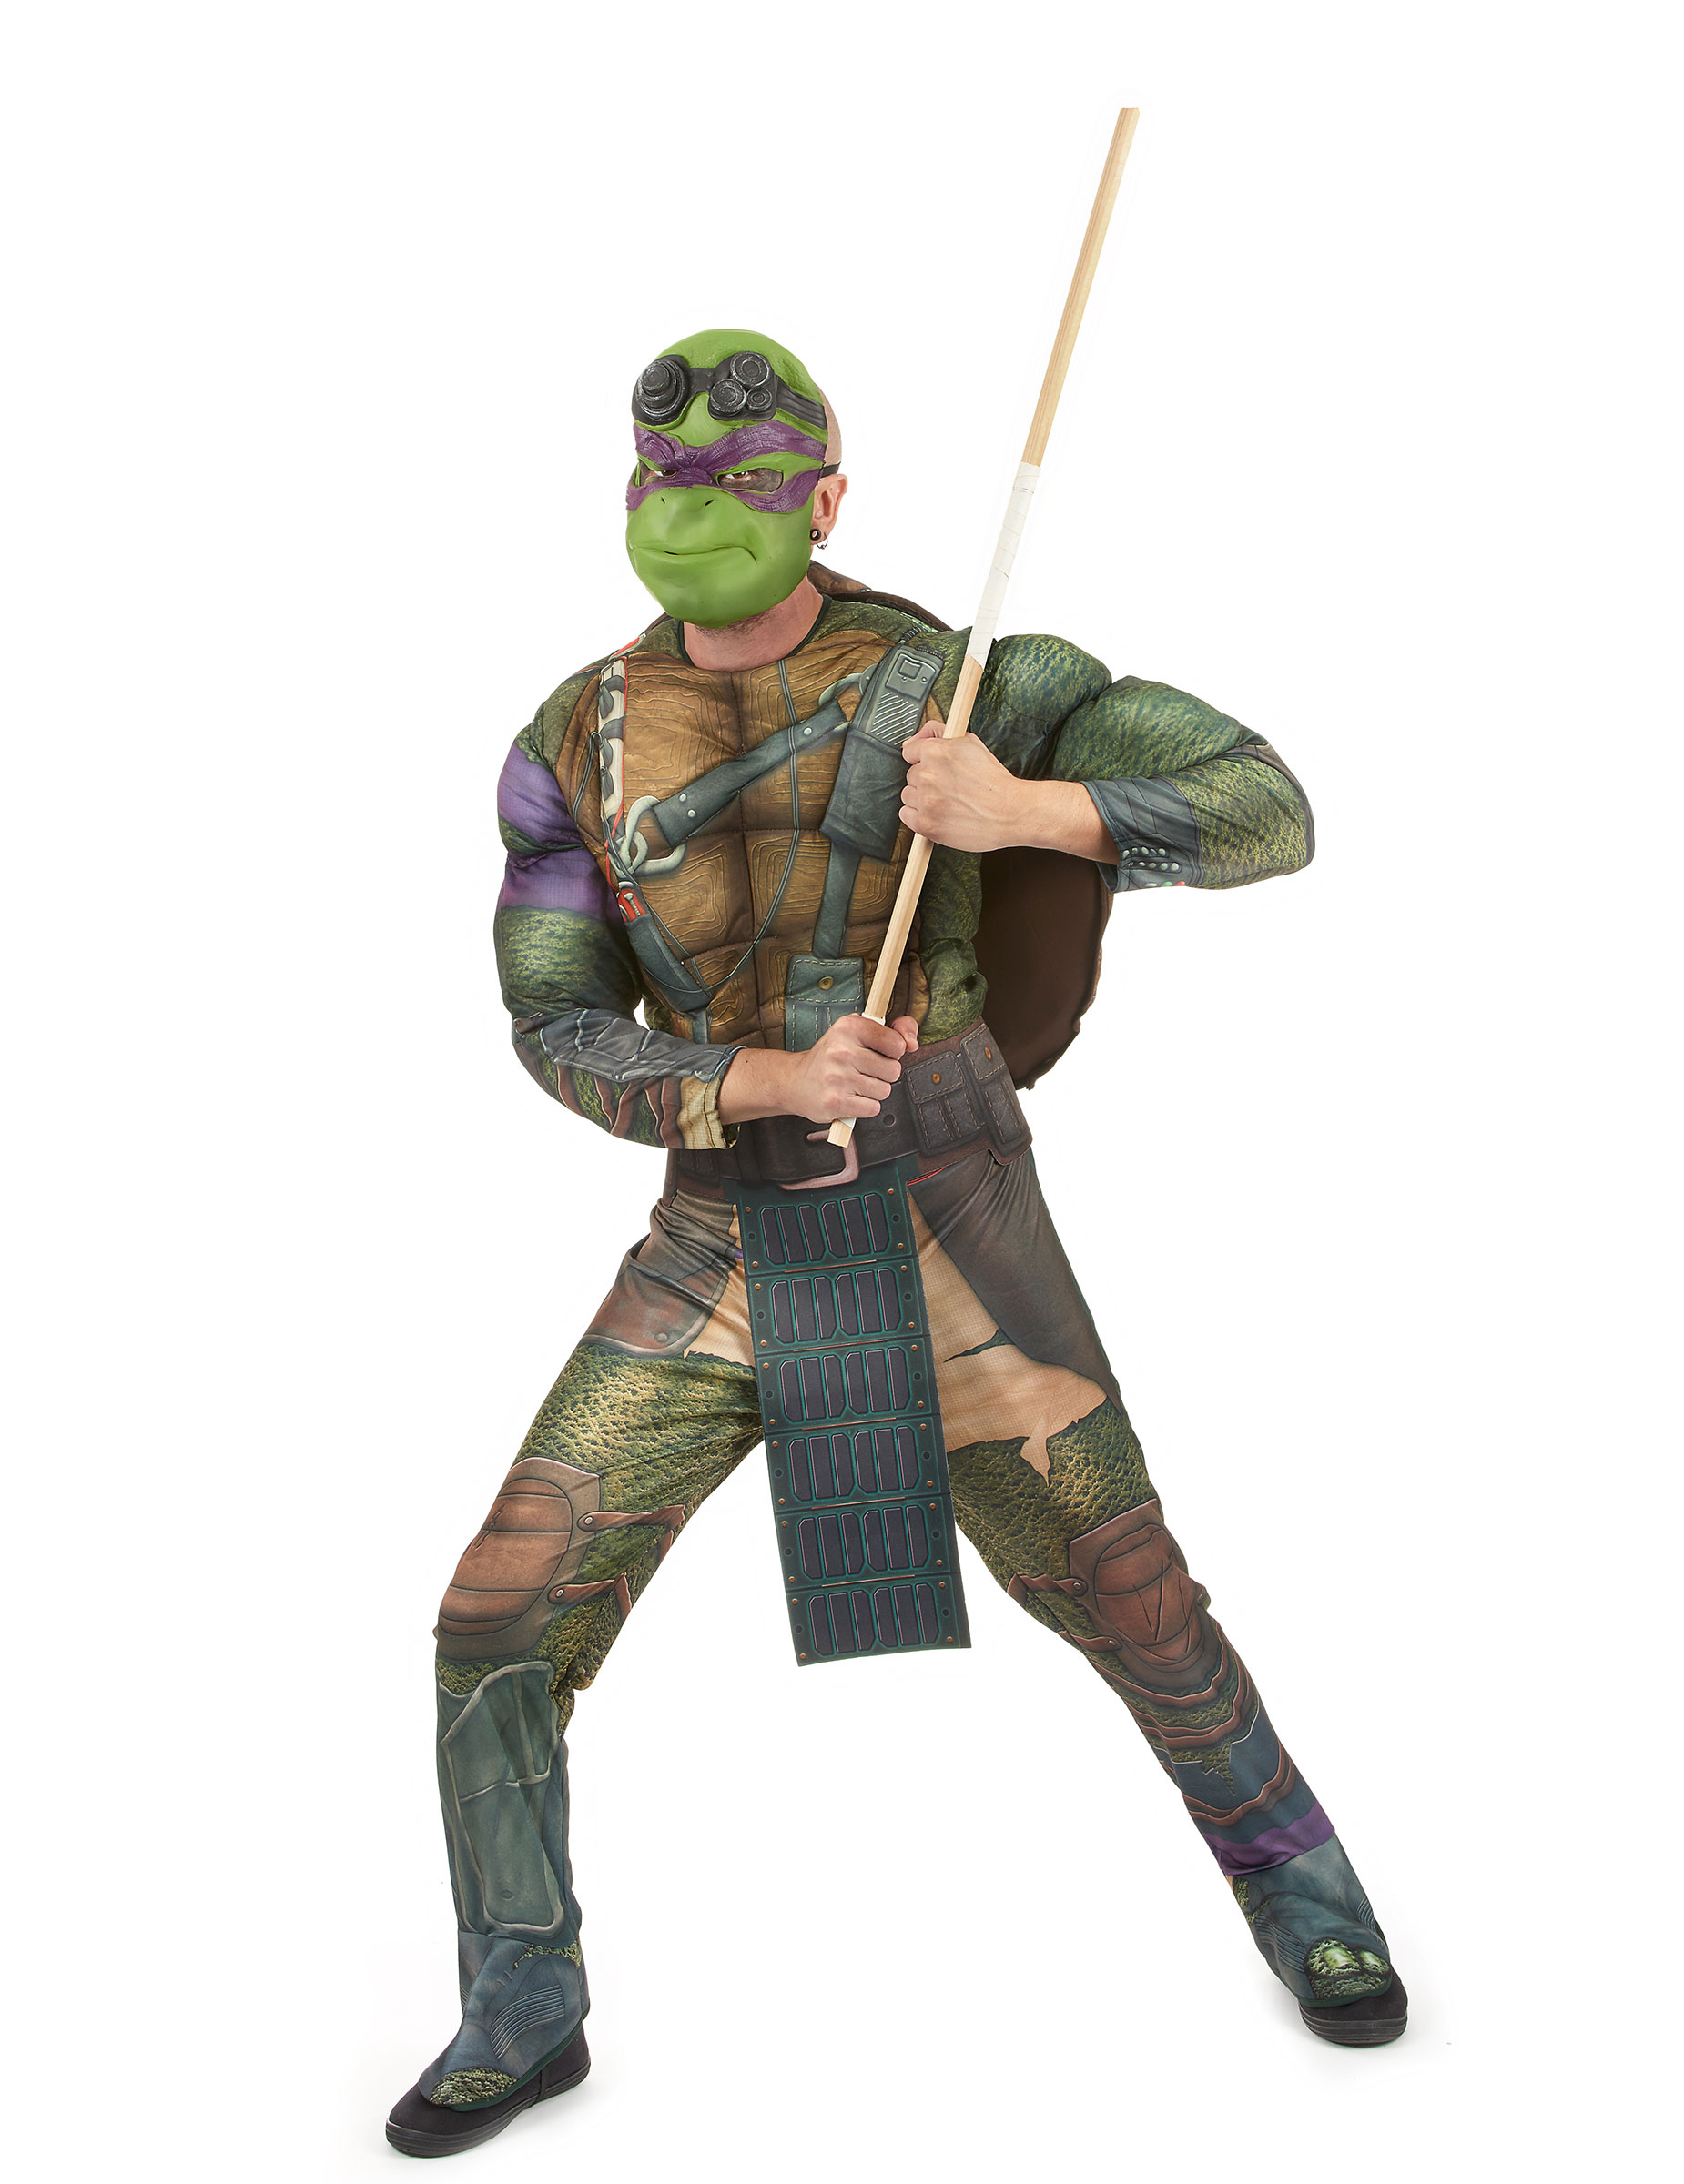 D guisement luxe donatello tortues ninja adulte deguise - Tortues ninja donatello ...